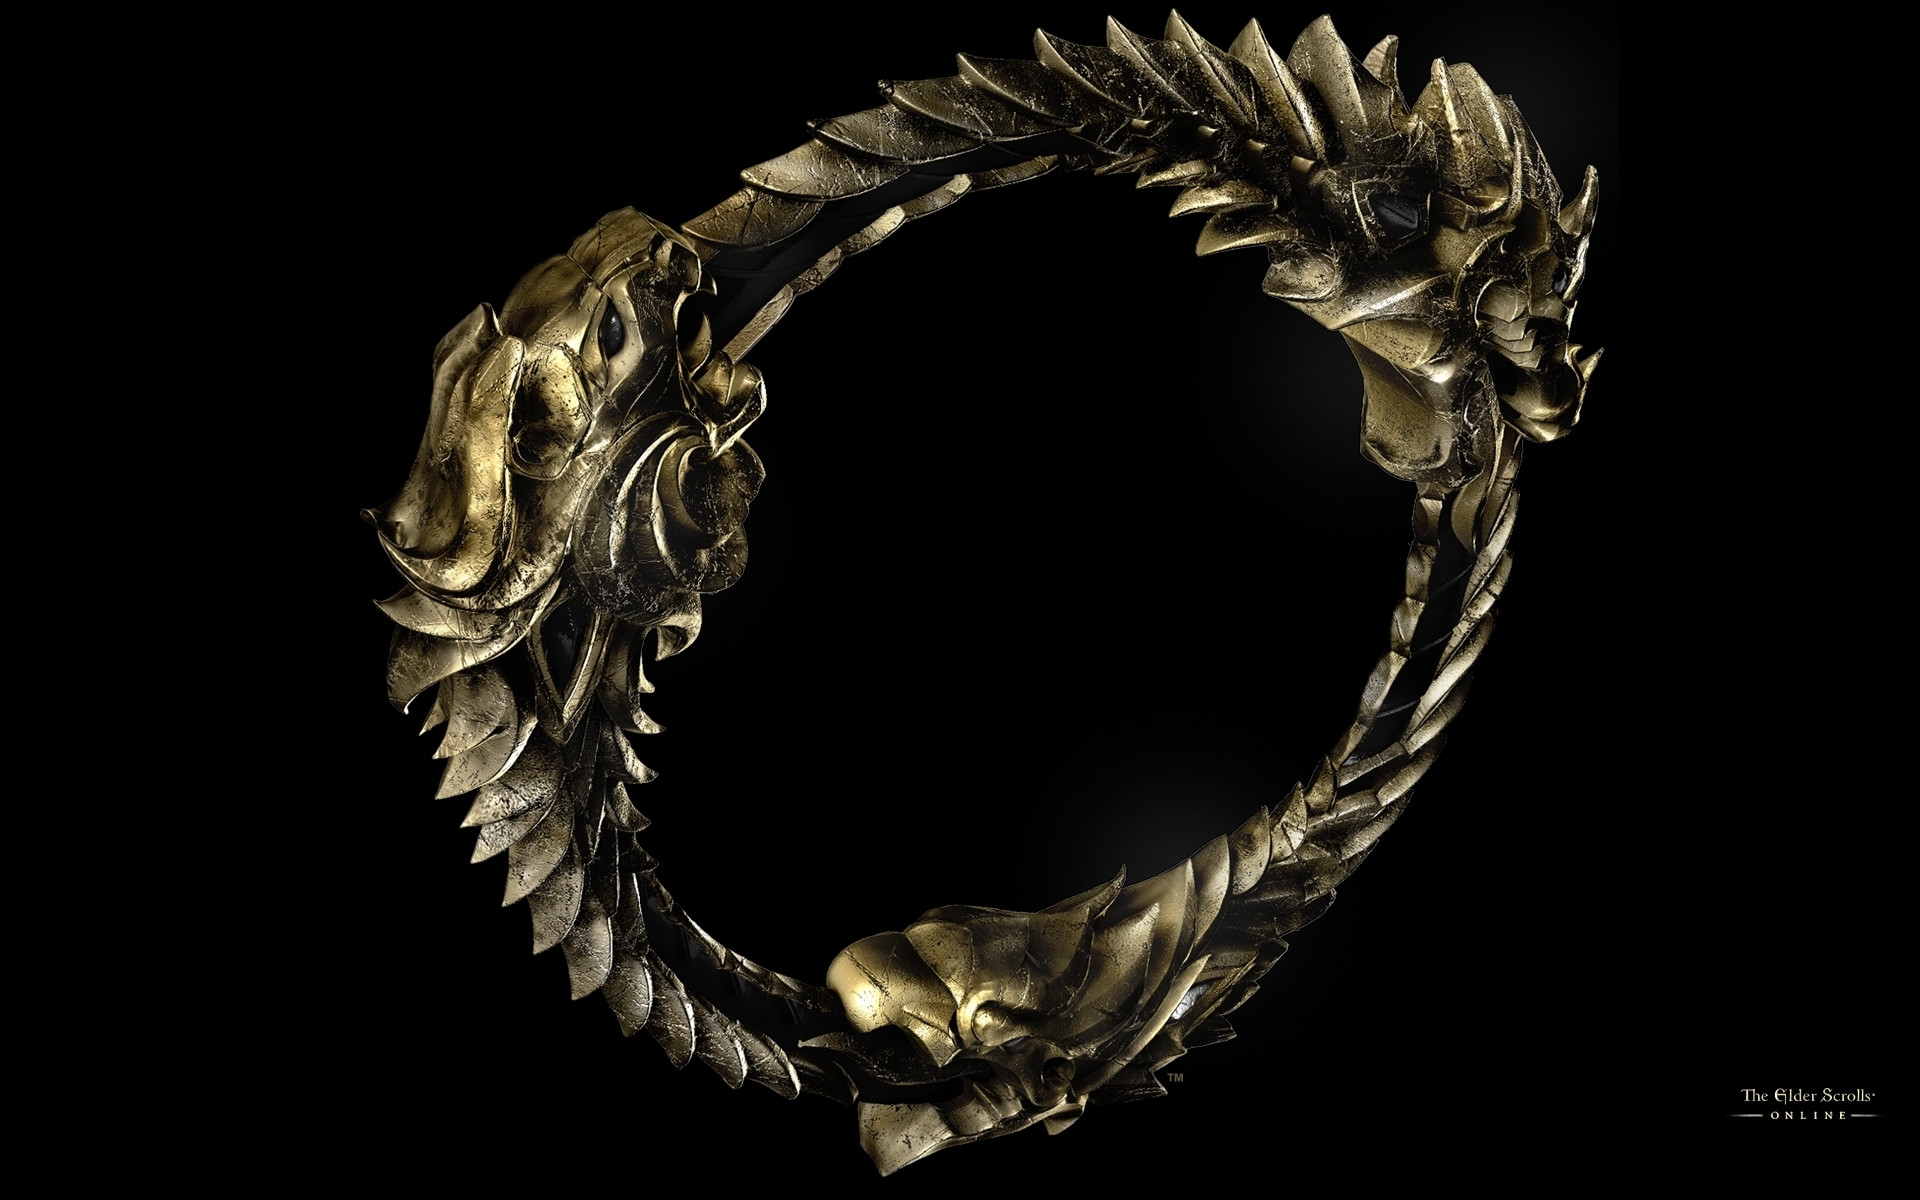 Wallpaper The Elder Scrolls Online: 3D Ouroboros